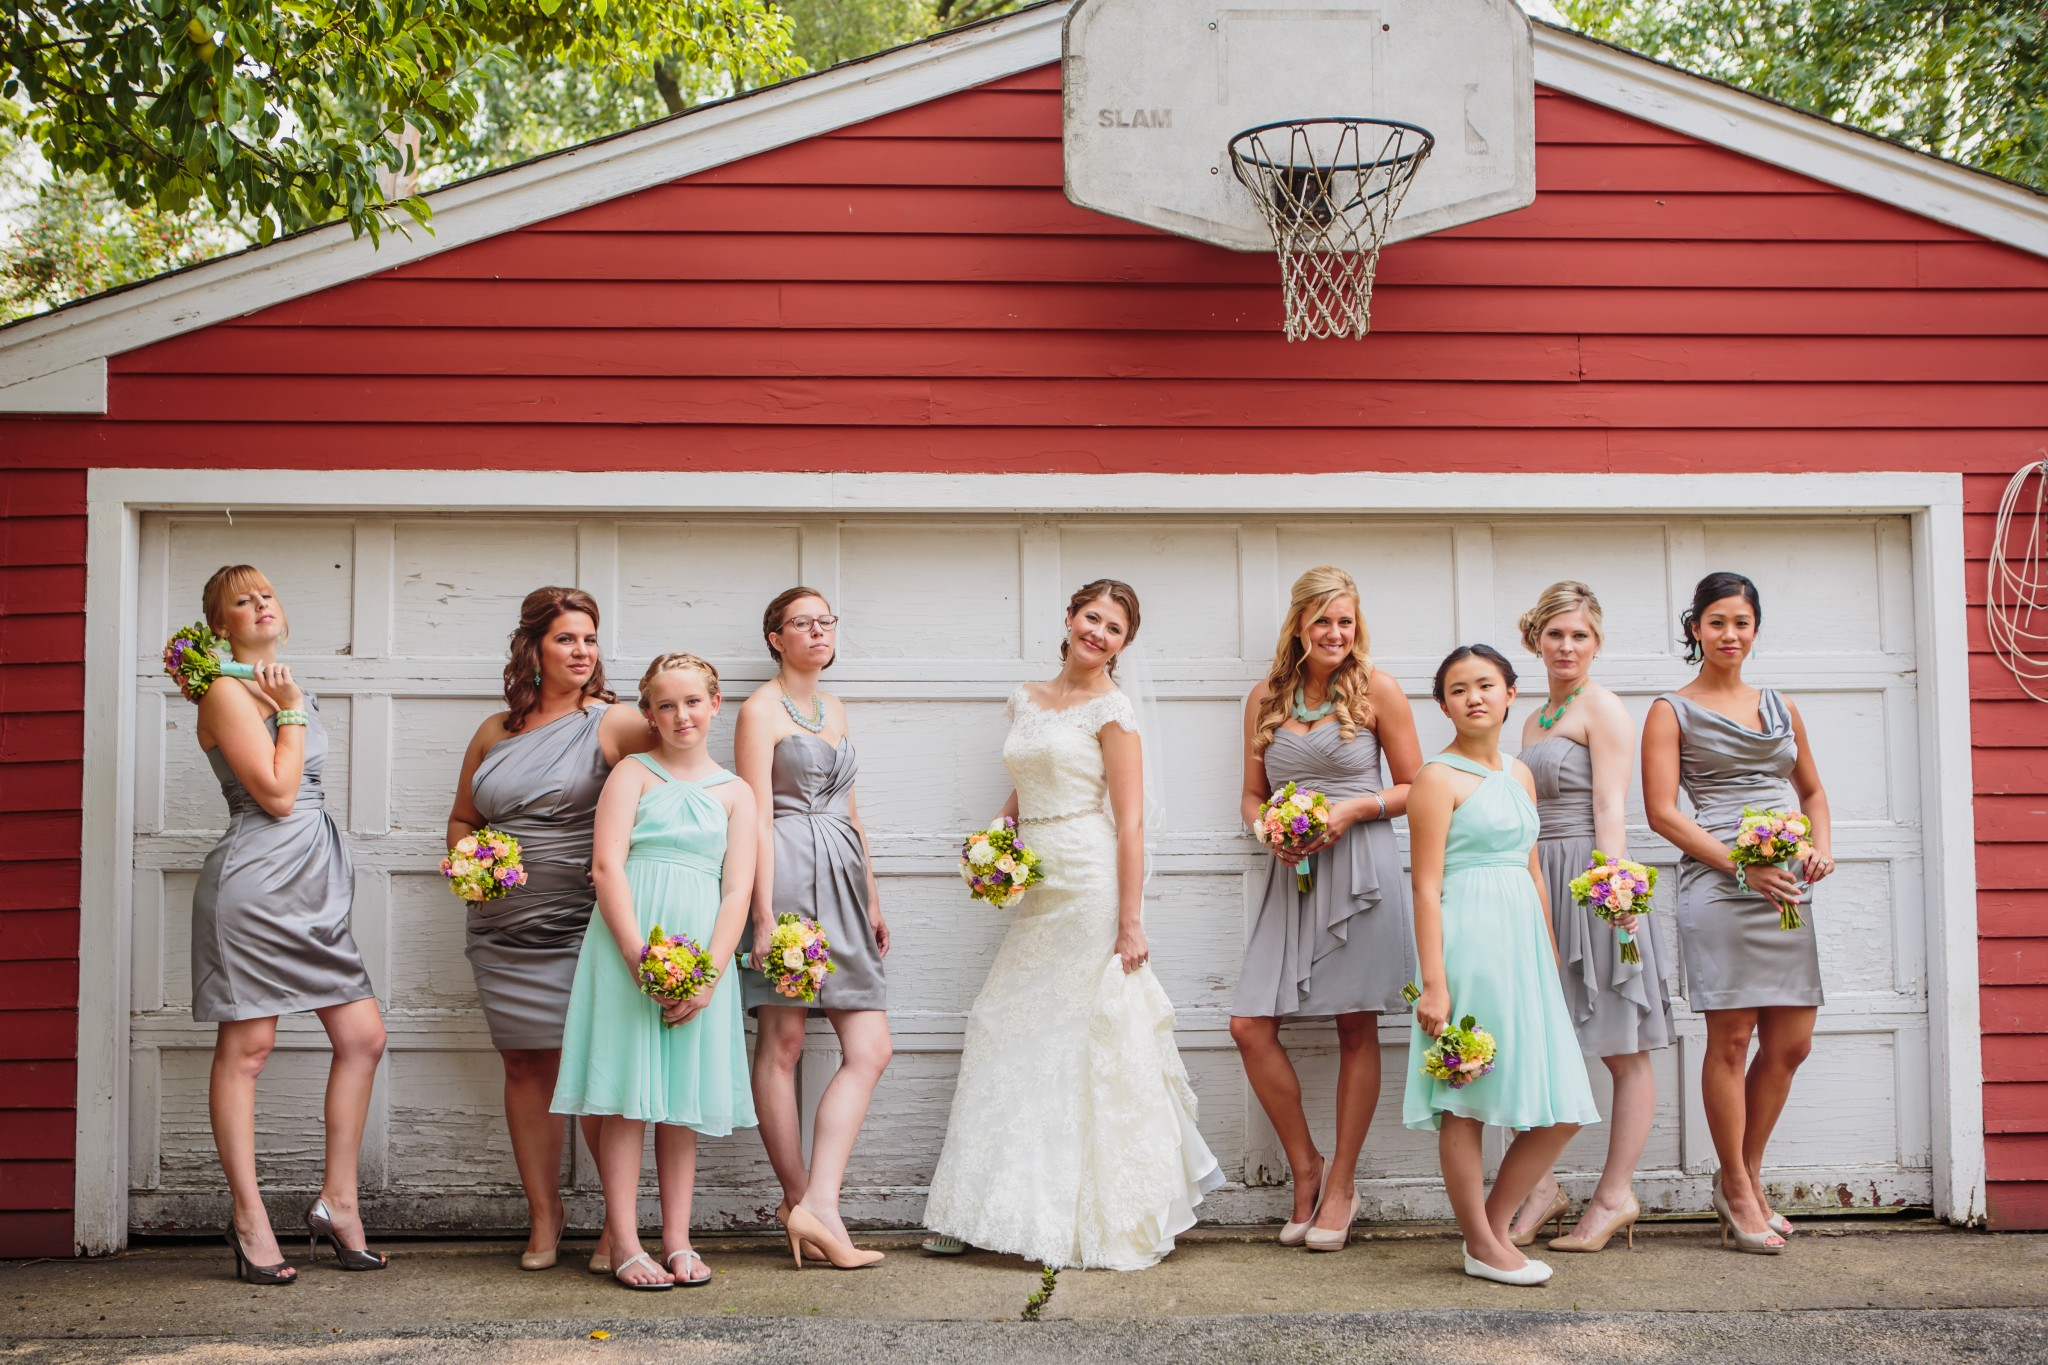 Quirky Wedding Party Photos by Wes Craft Photography, Chicago, Naperville, IL